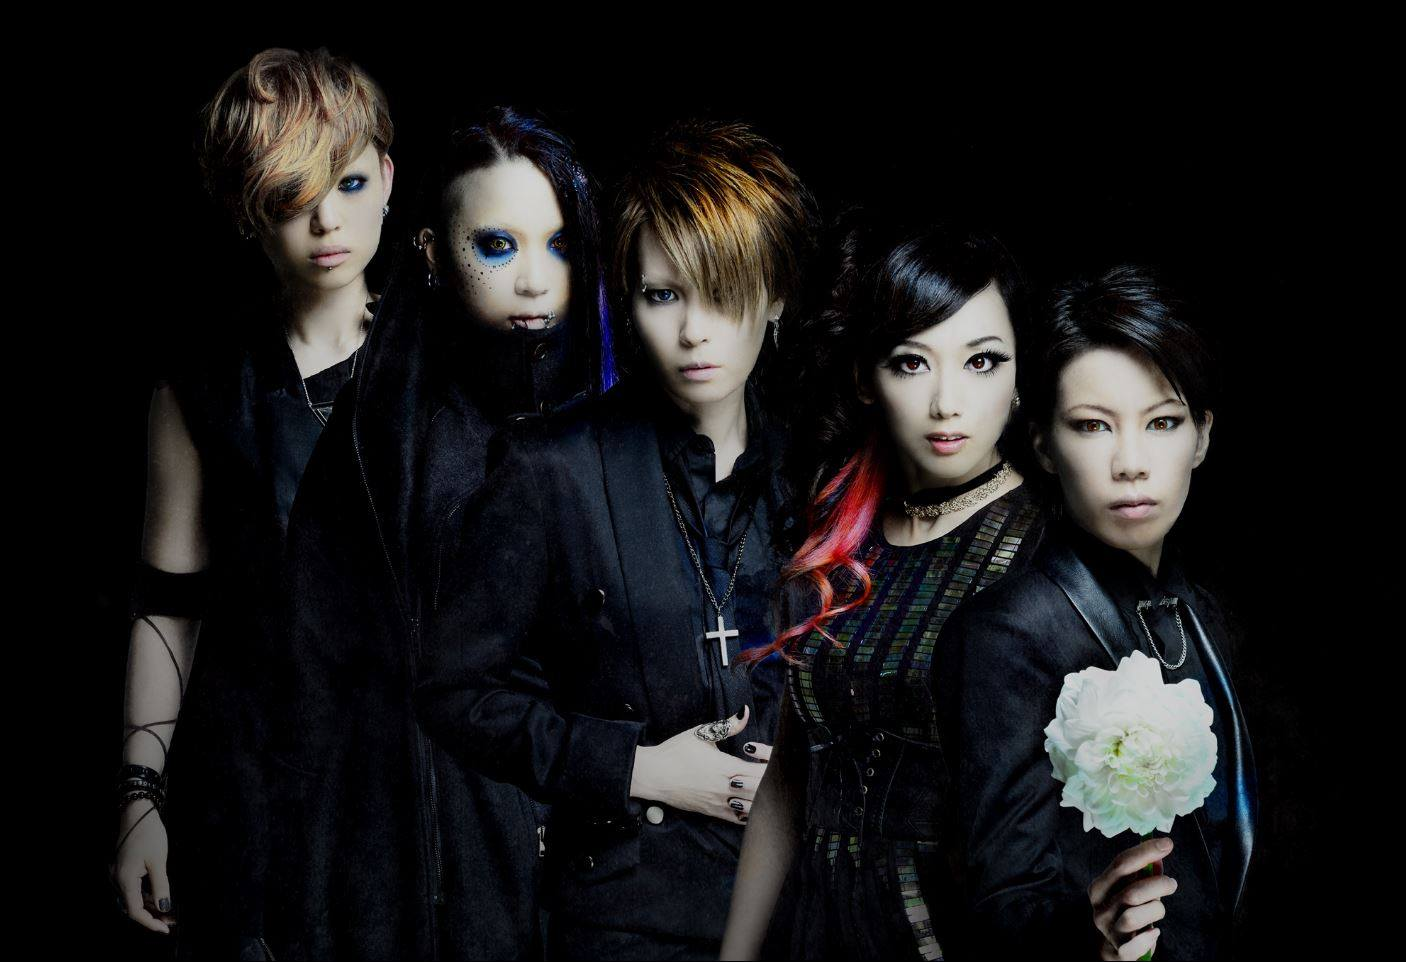 JRock247-exist-trace-2015-12-new-visual-2